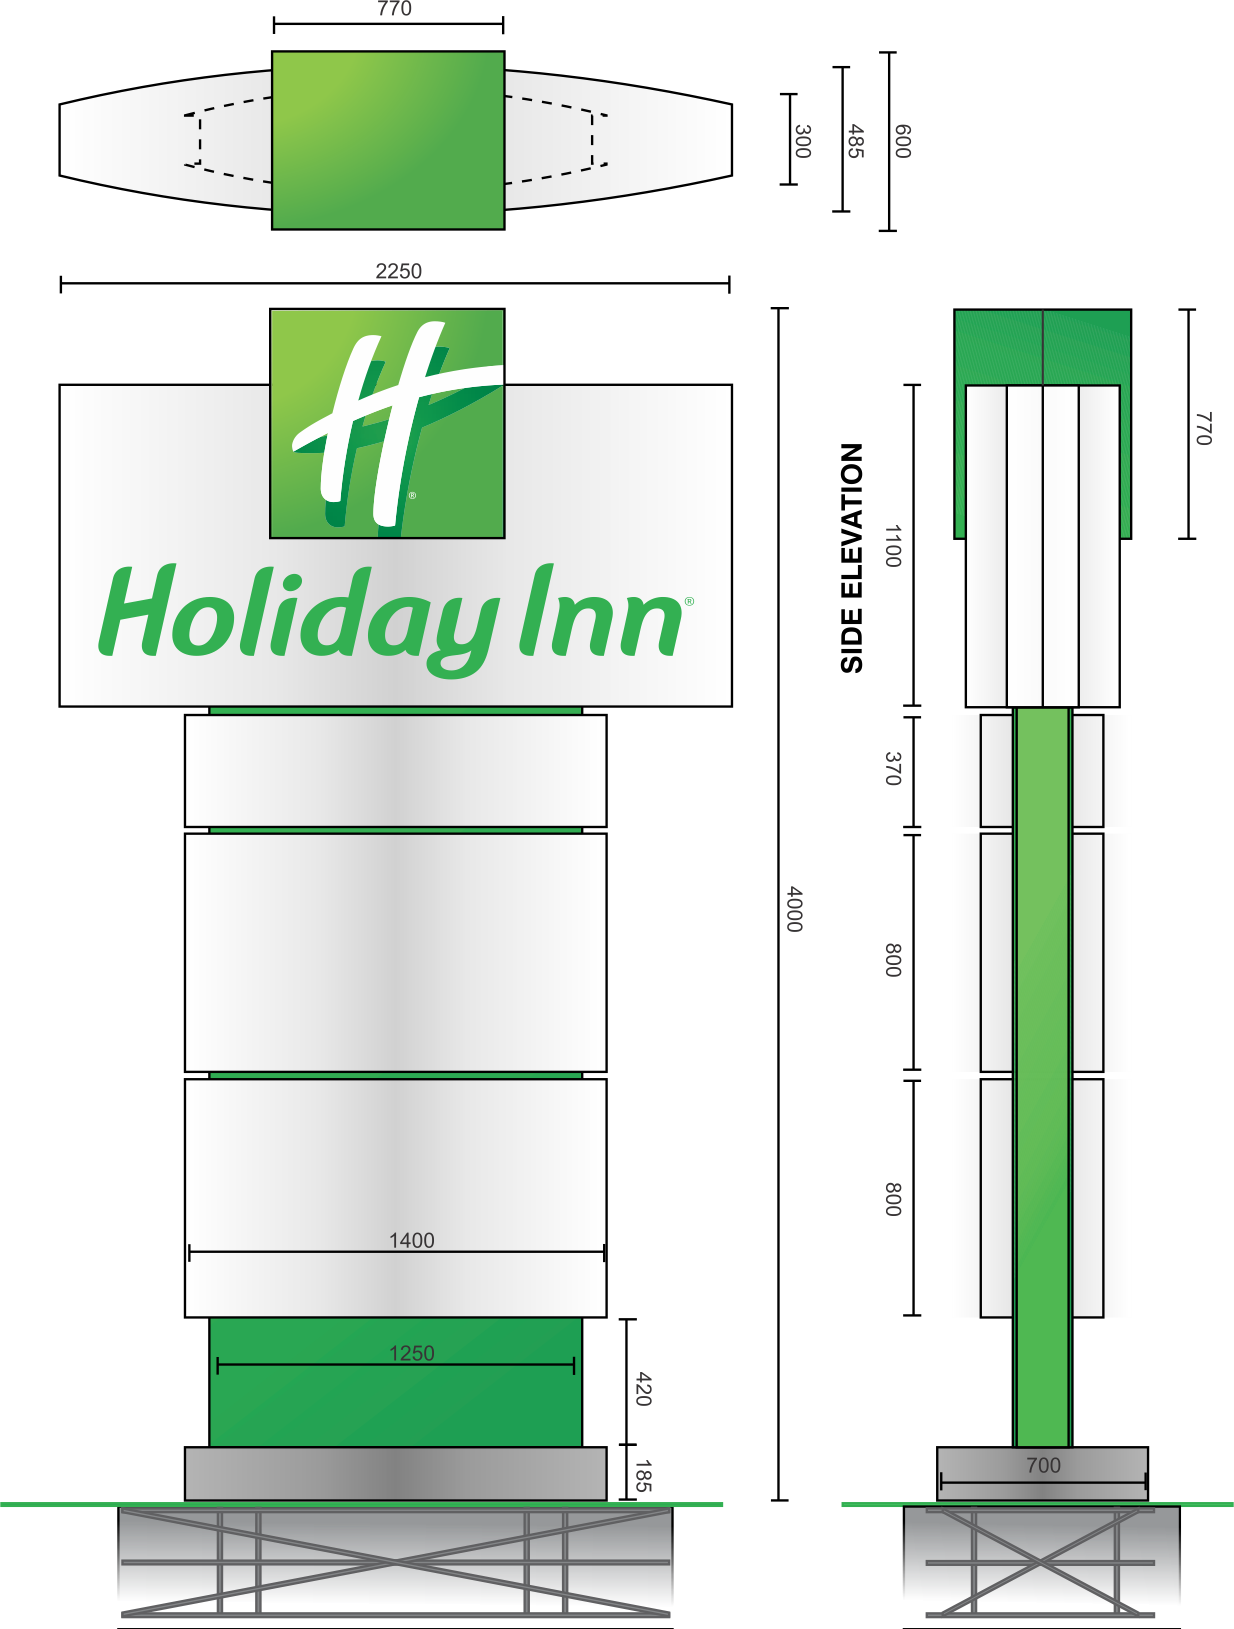 Holiday Inn 2D